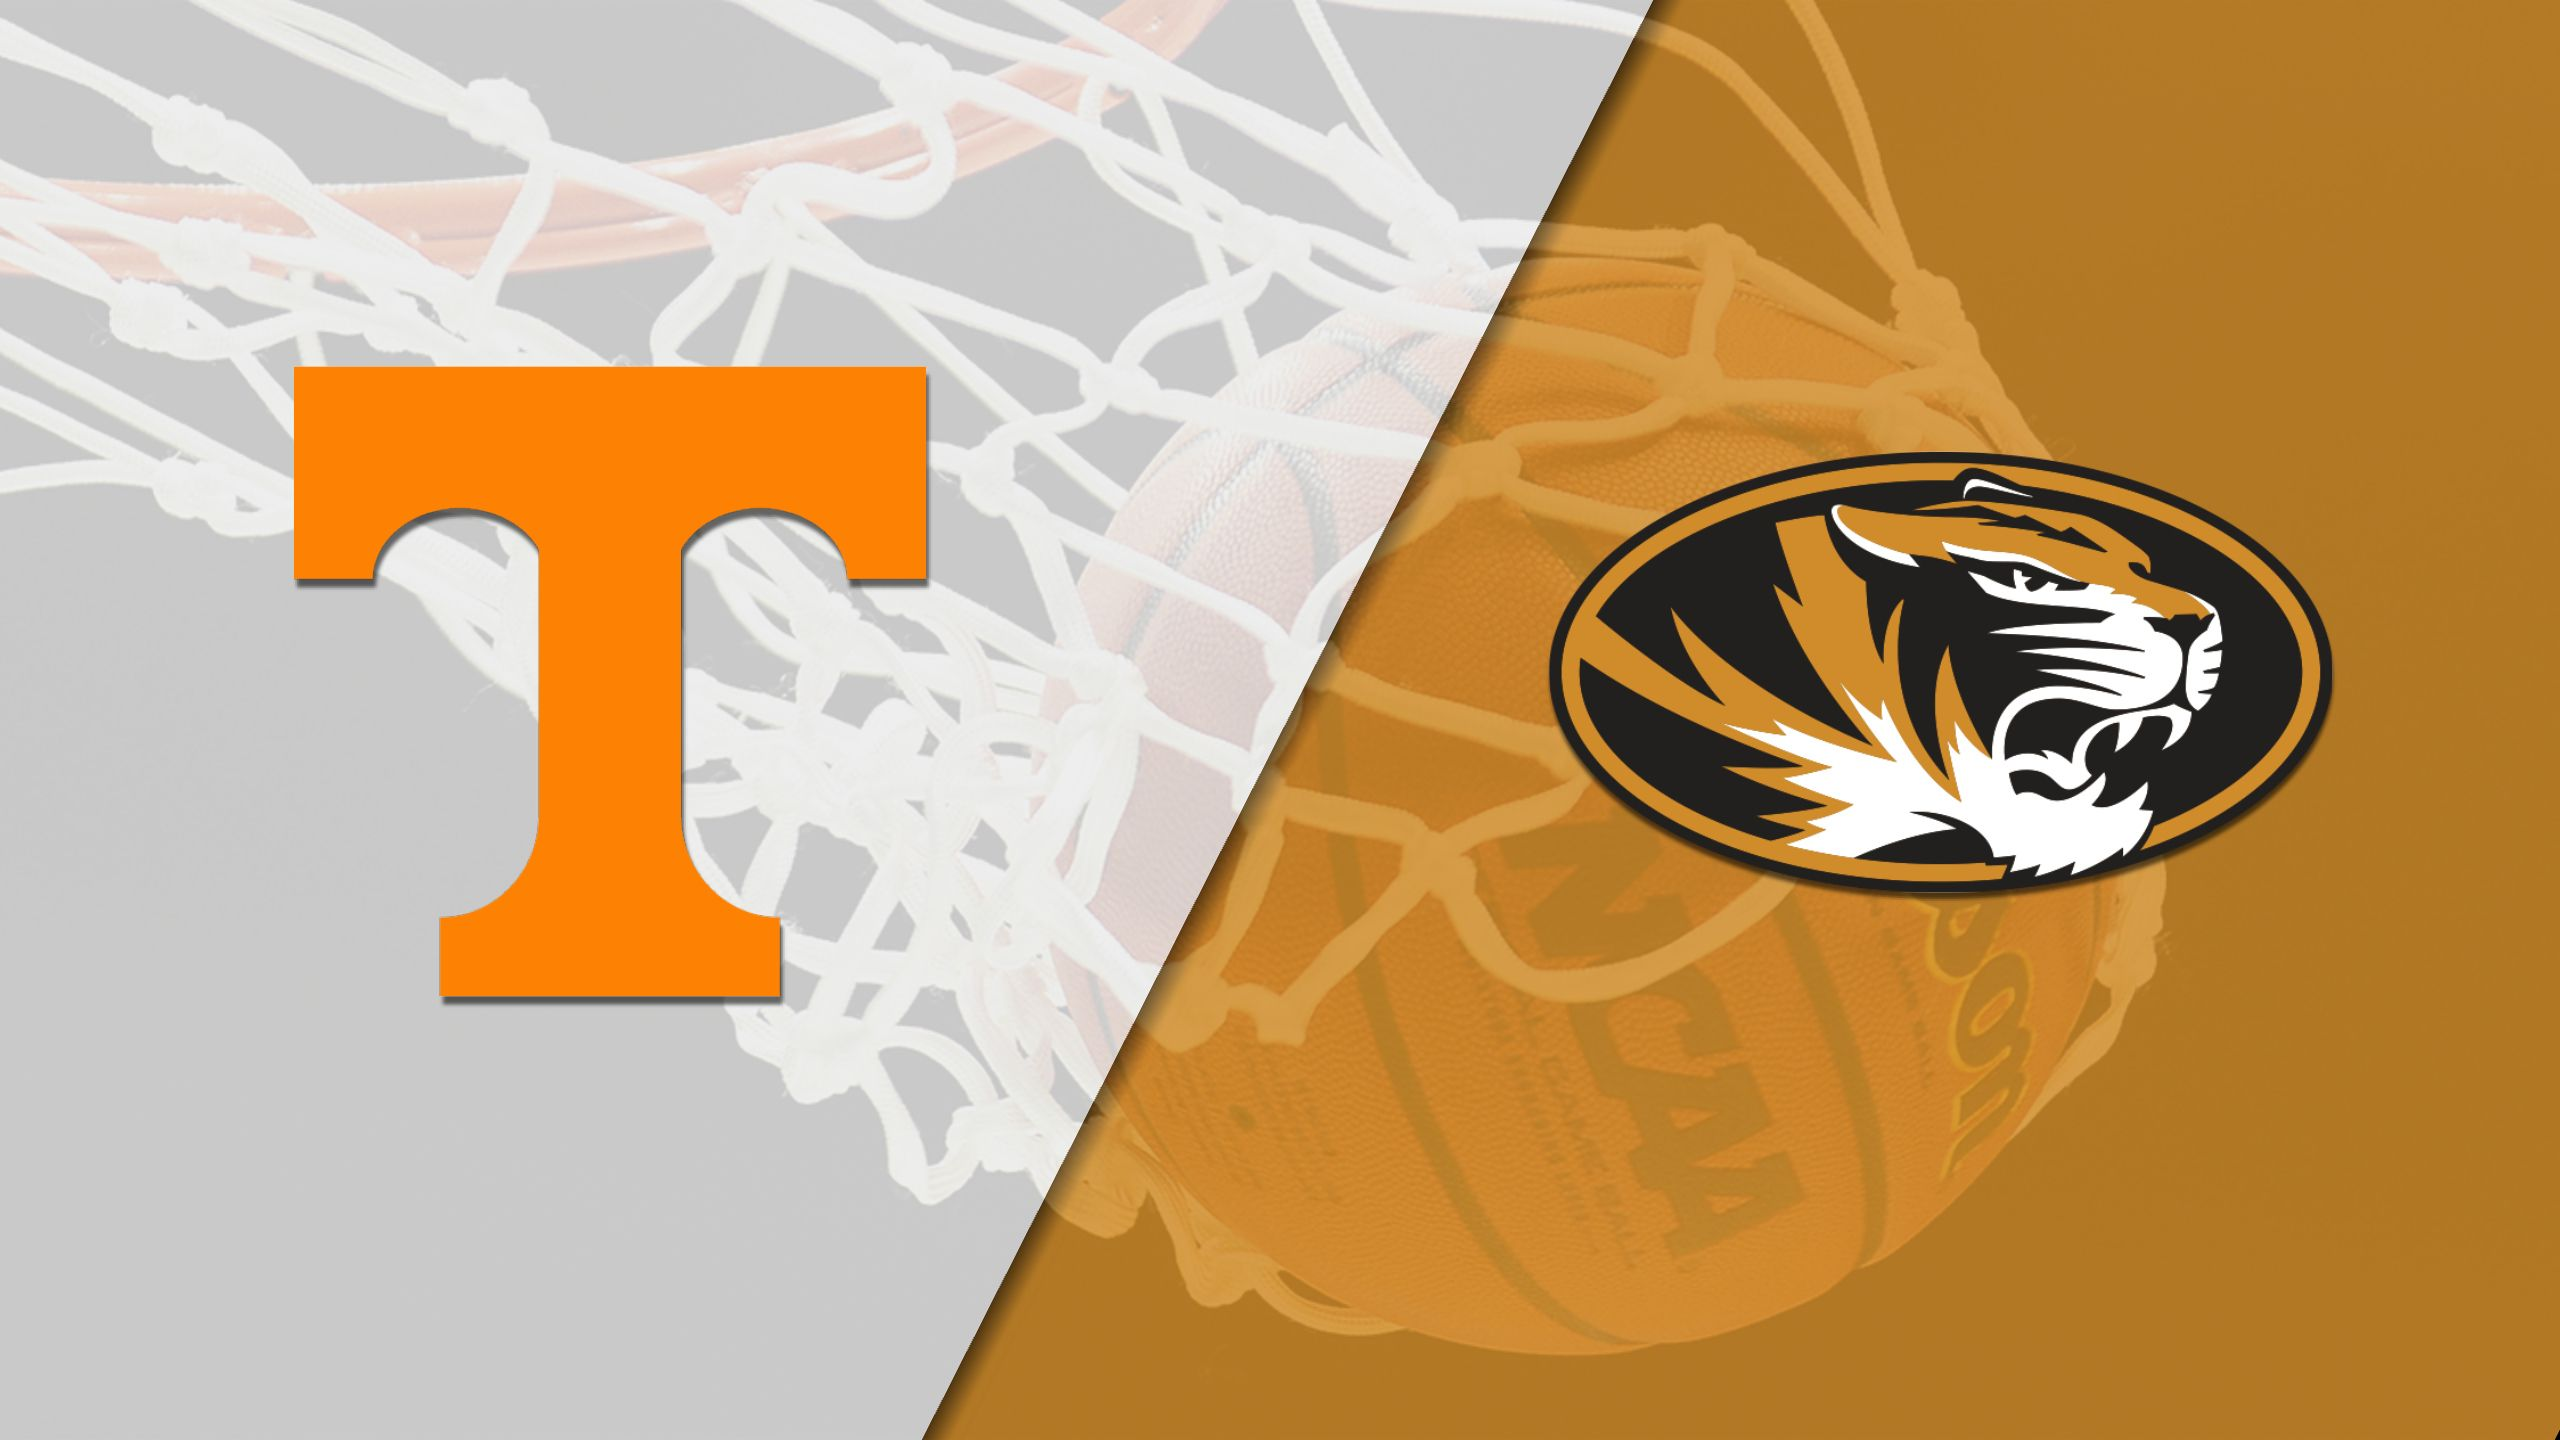 #21 Tennessee vs. Missouri (M Basketball)